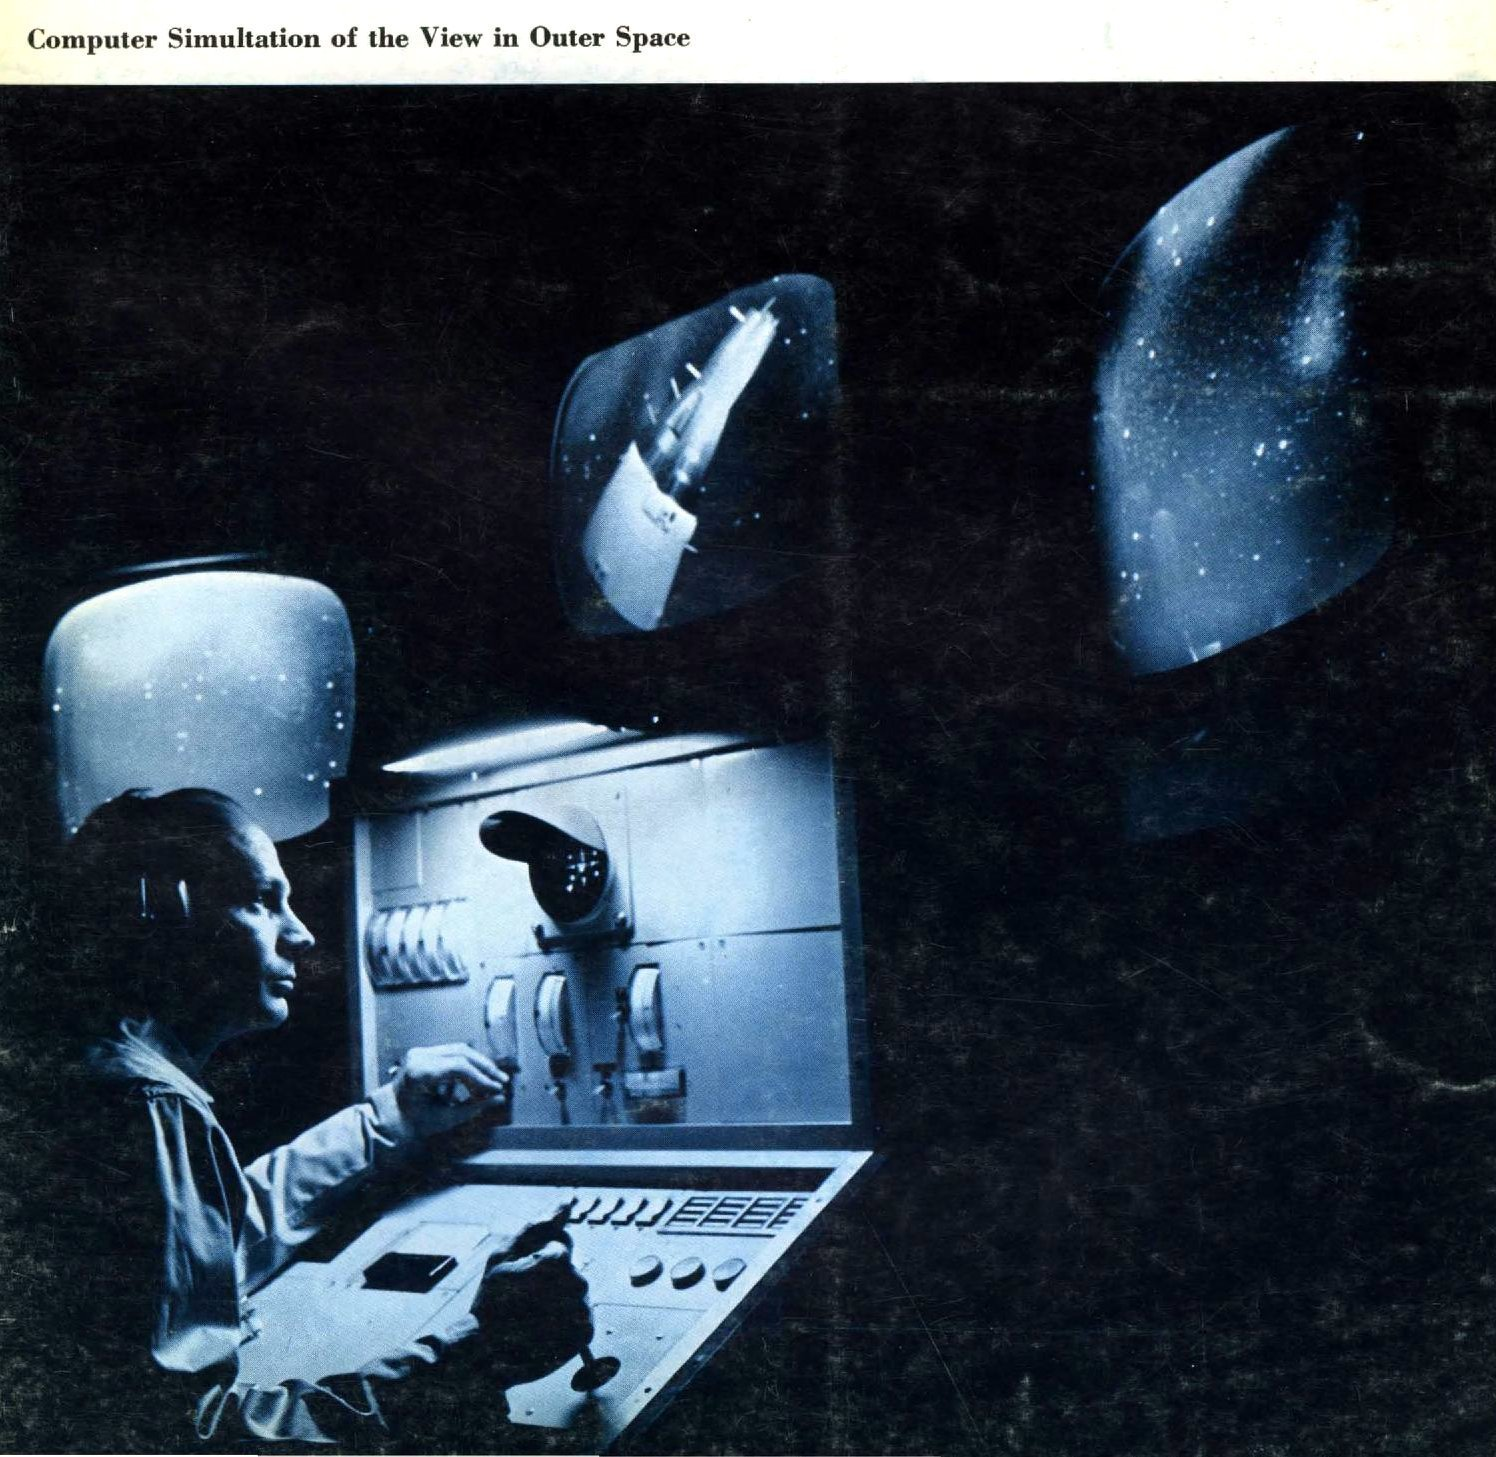 Computer simulation of the view in outer space (1965)